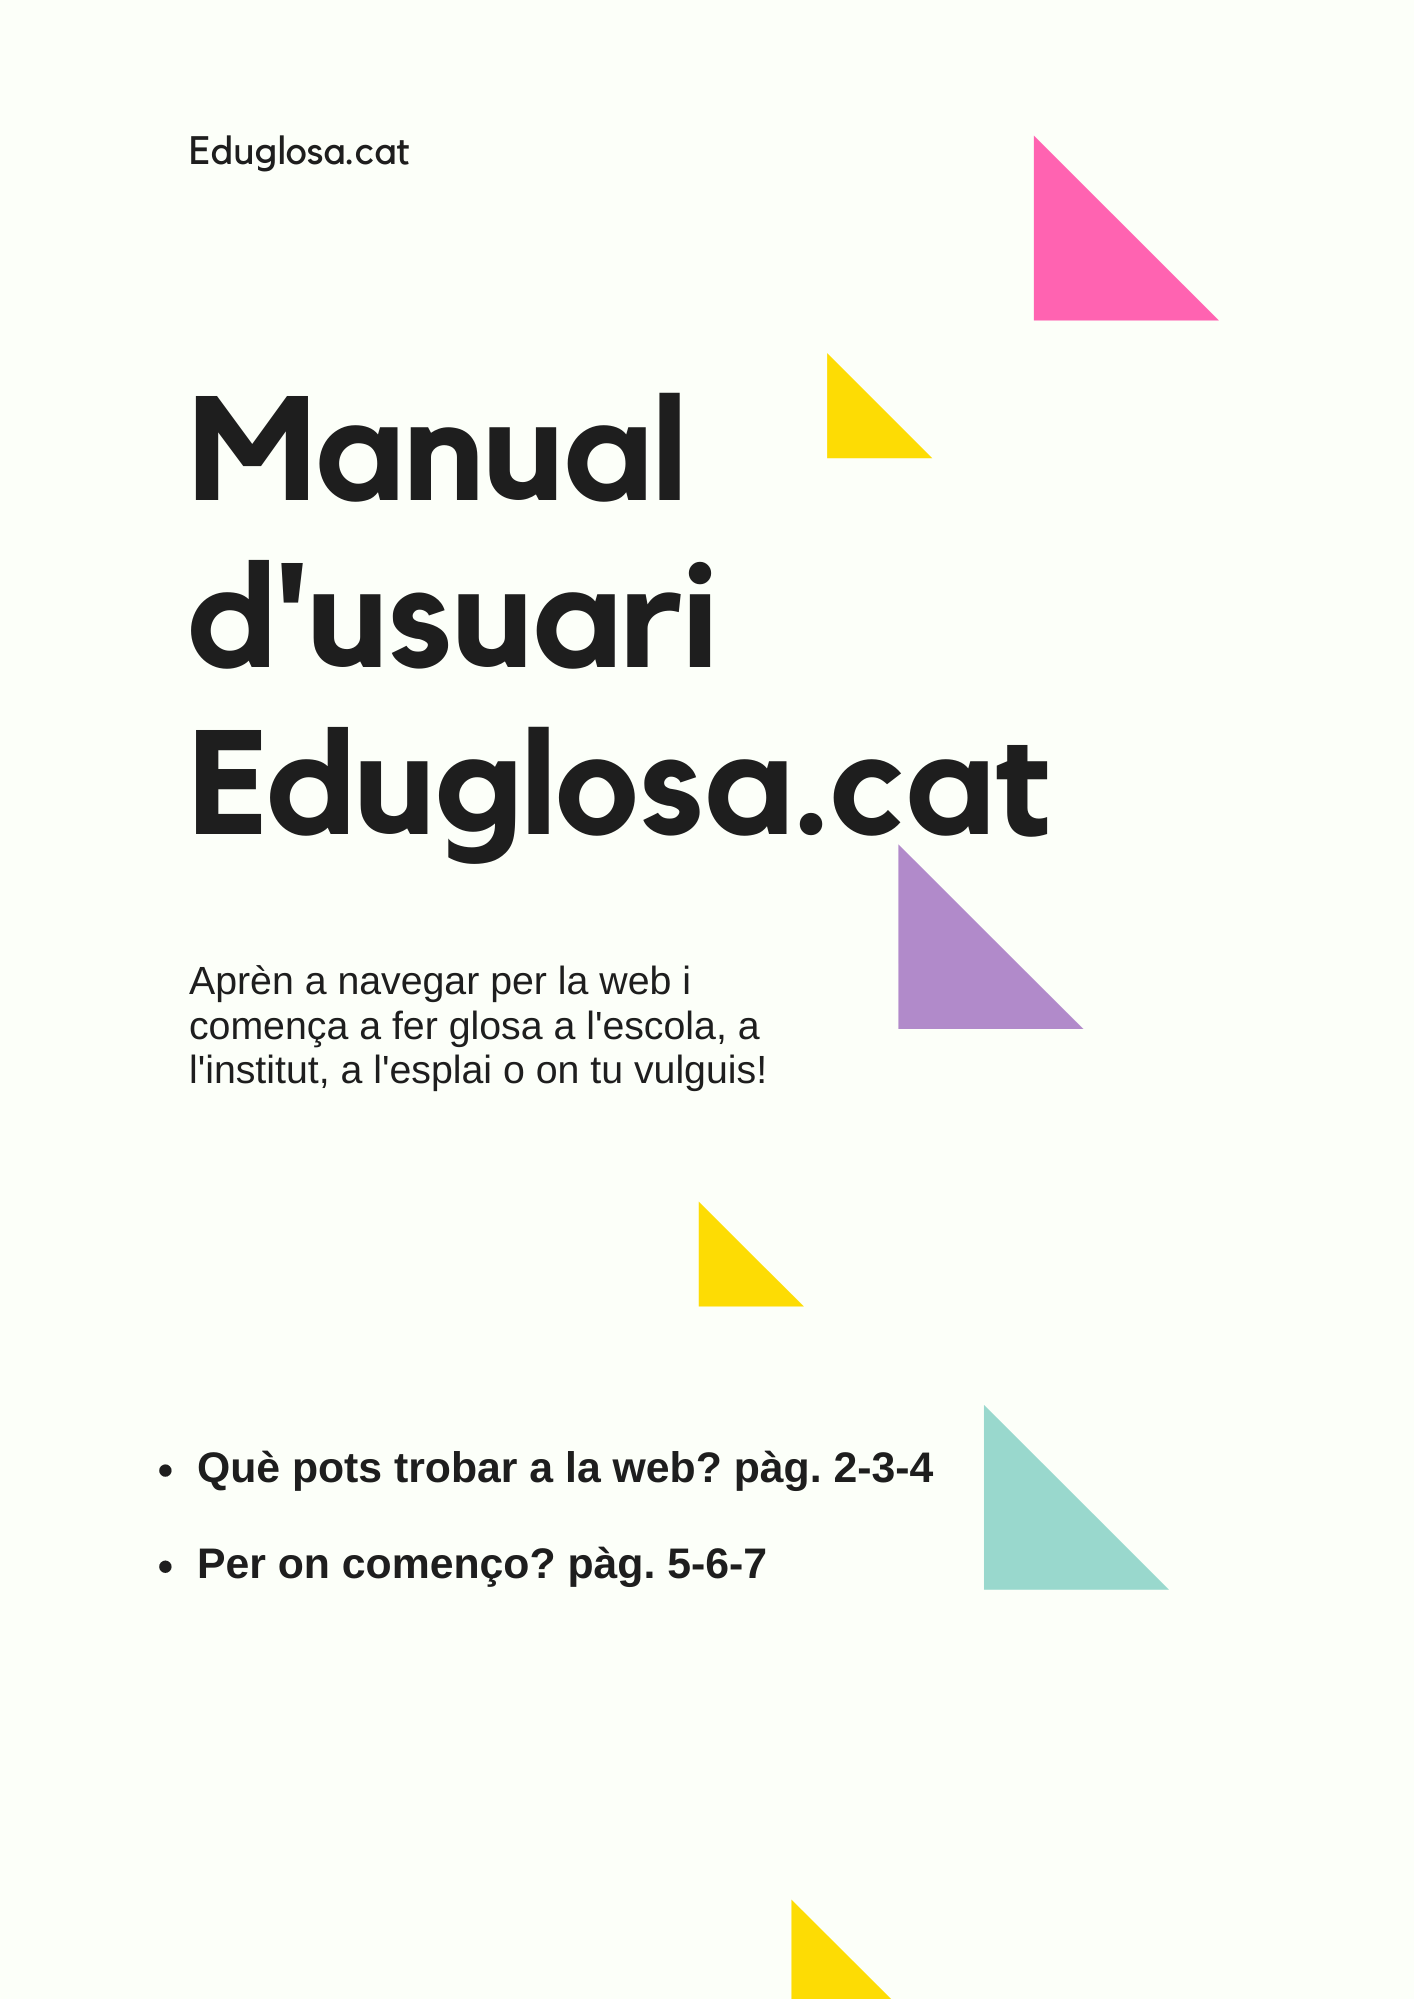 Manual d'ususari Eduglosa